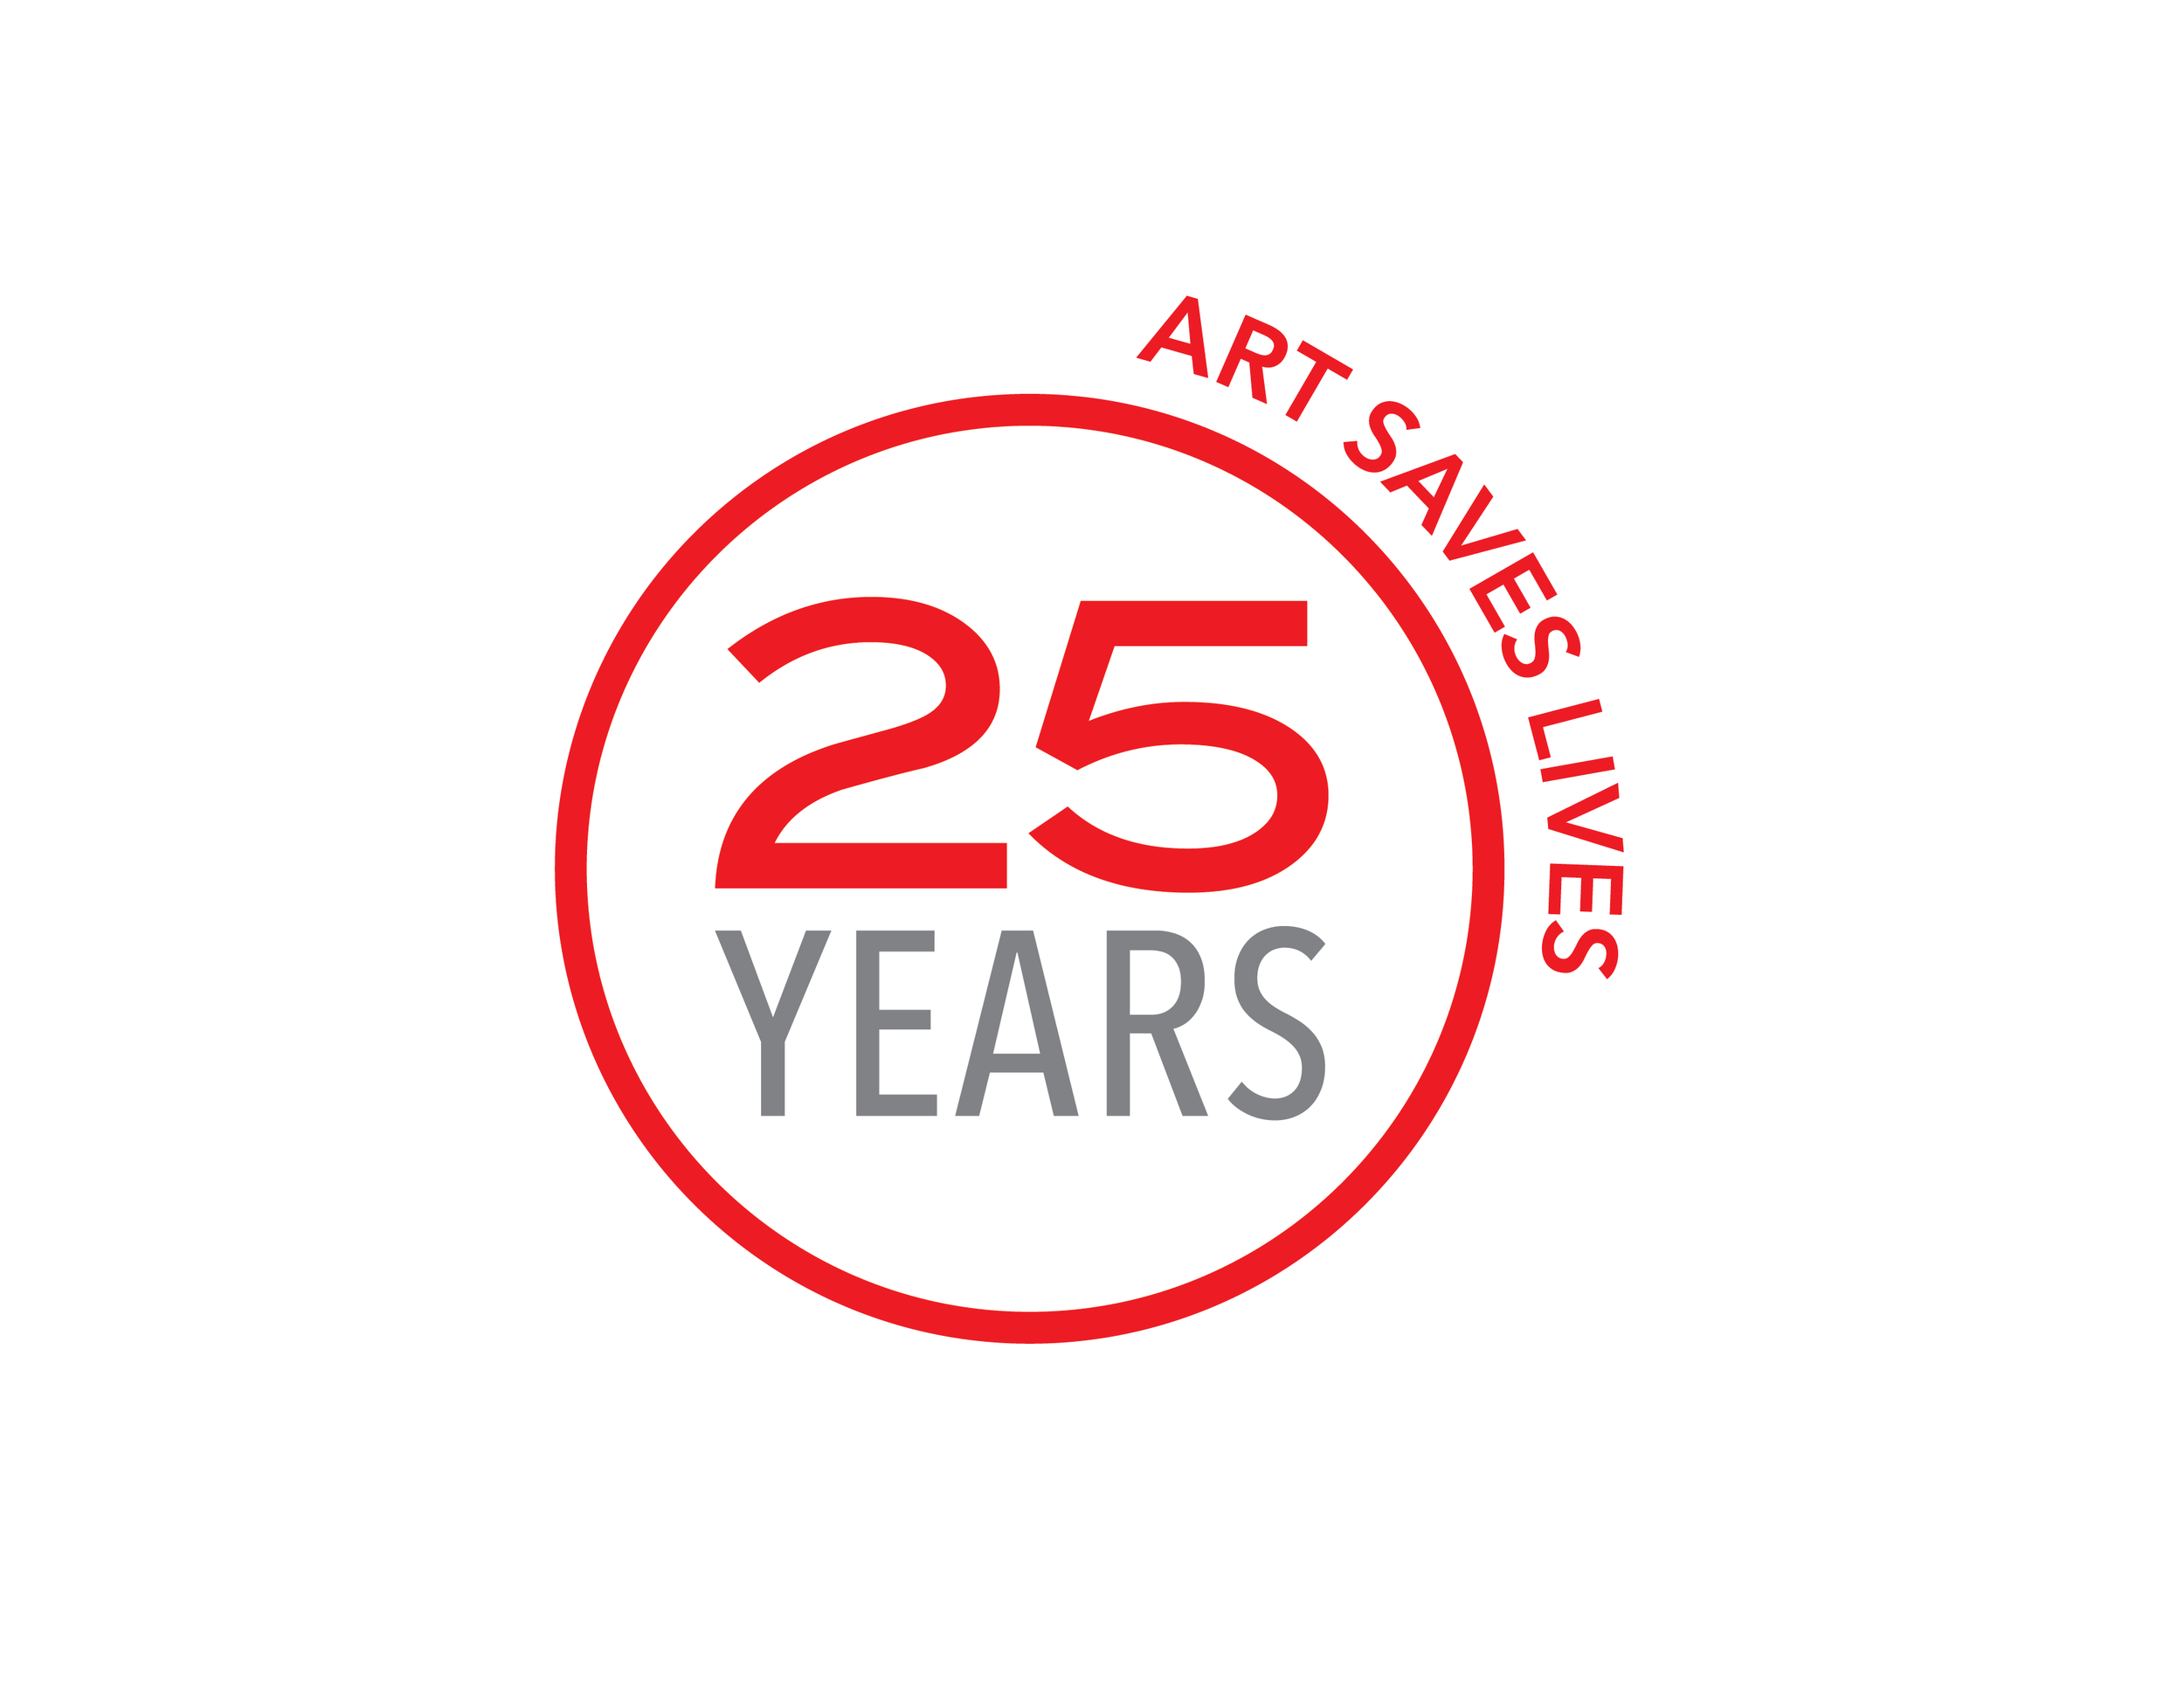 25_YEARS_artsaveslives_logo2-01.png